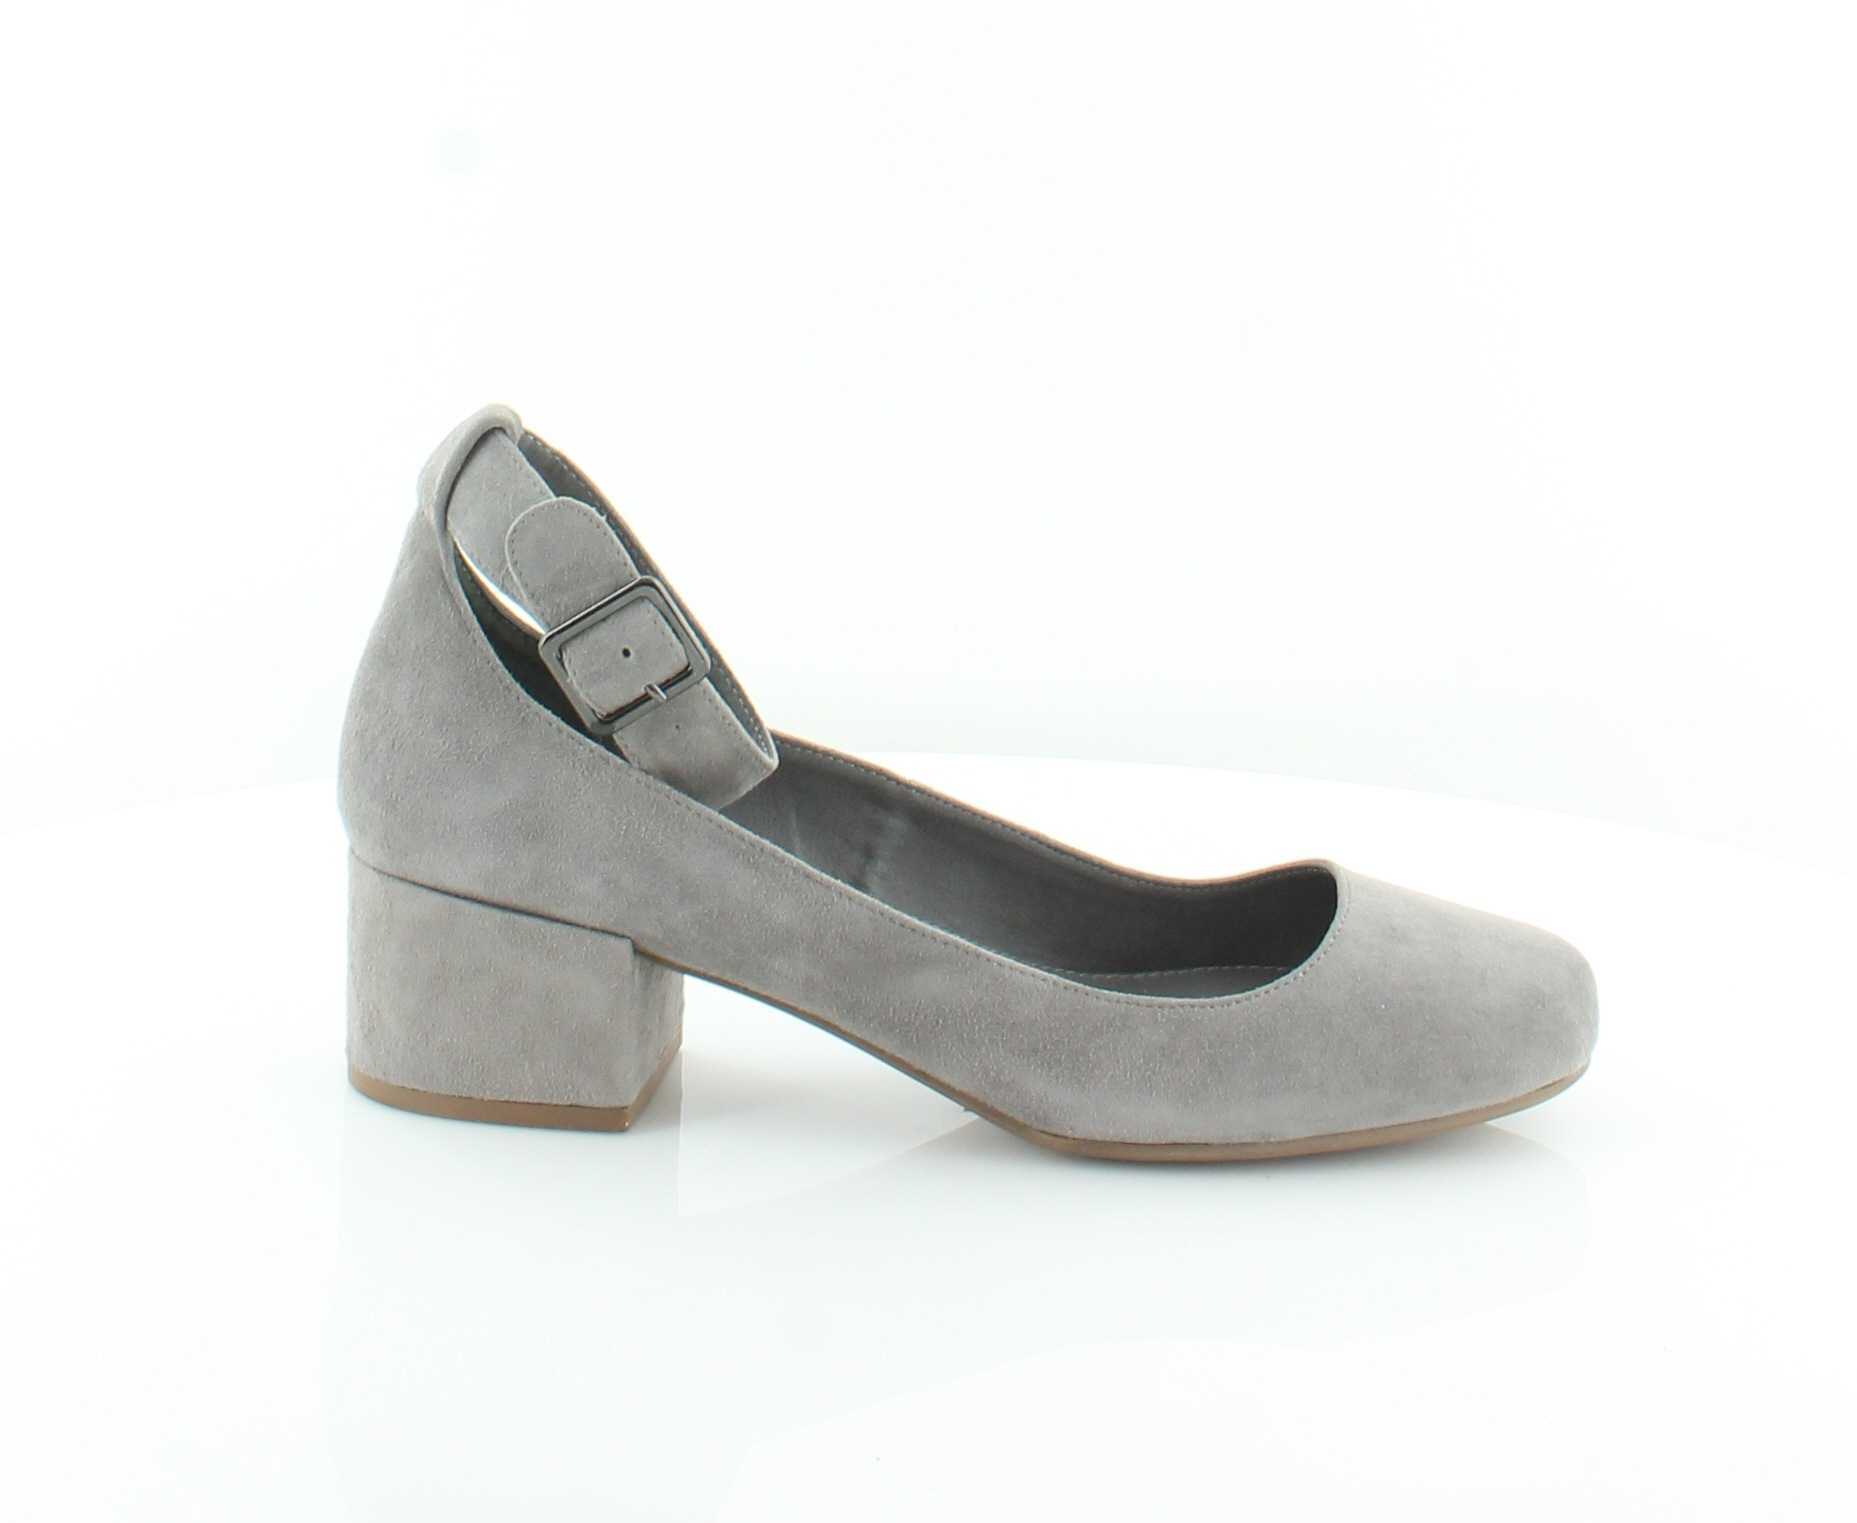 378bbfe3617 Steve Madden New Wails Gray Womens Shoes Size 9.5 M Heels MSRP  89 ...